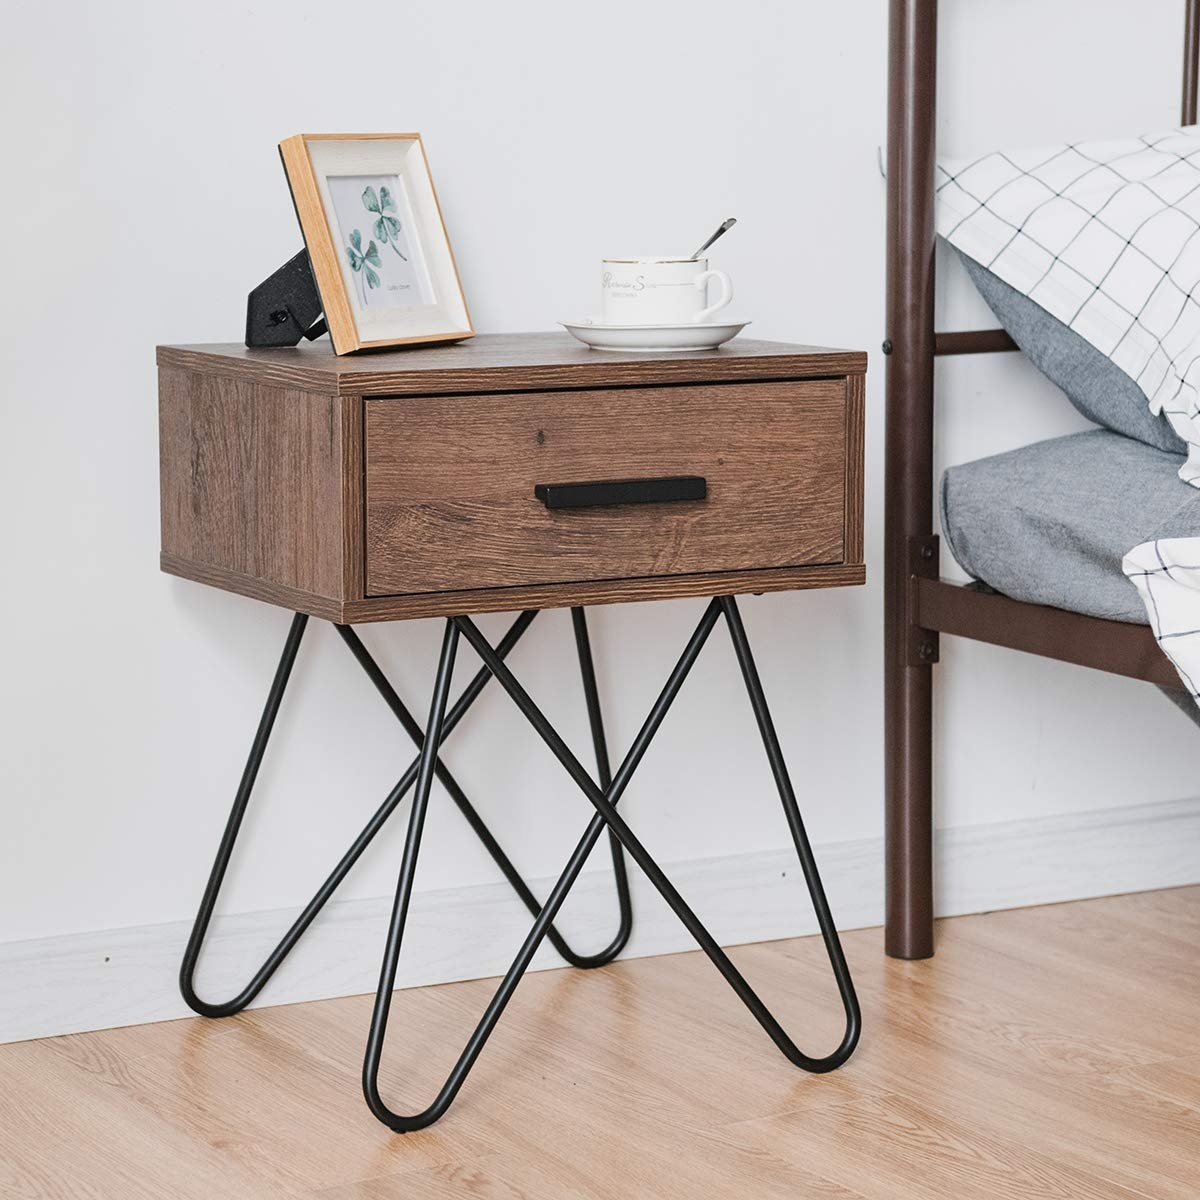 Use an old object as a nightstand